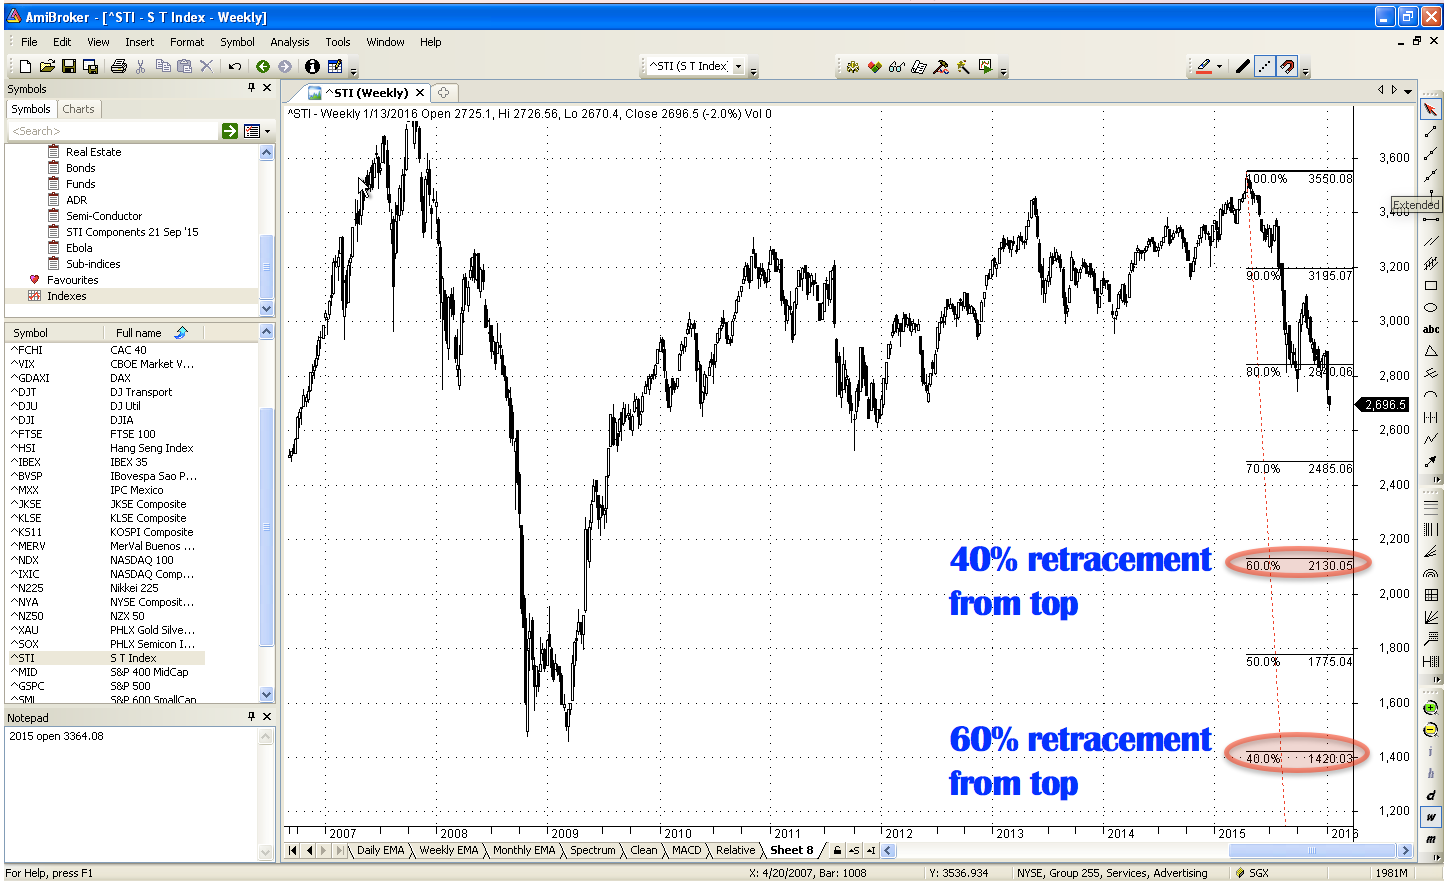 STI values at 40, 60% retracement from top